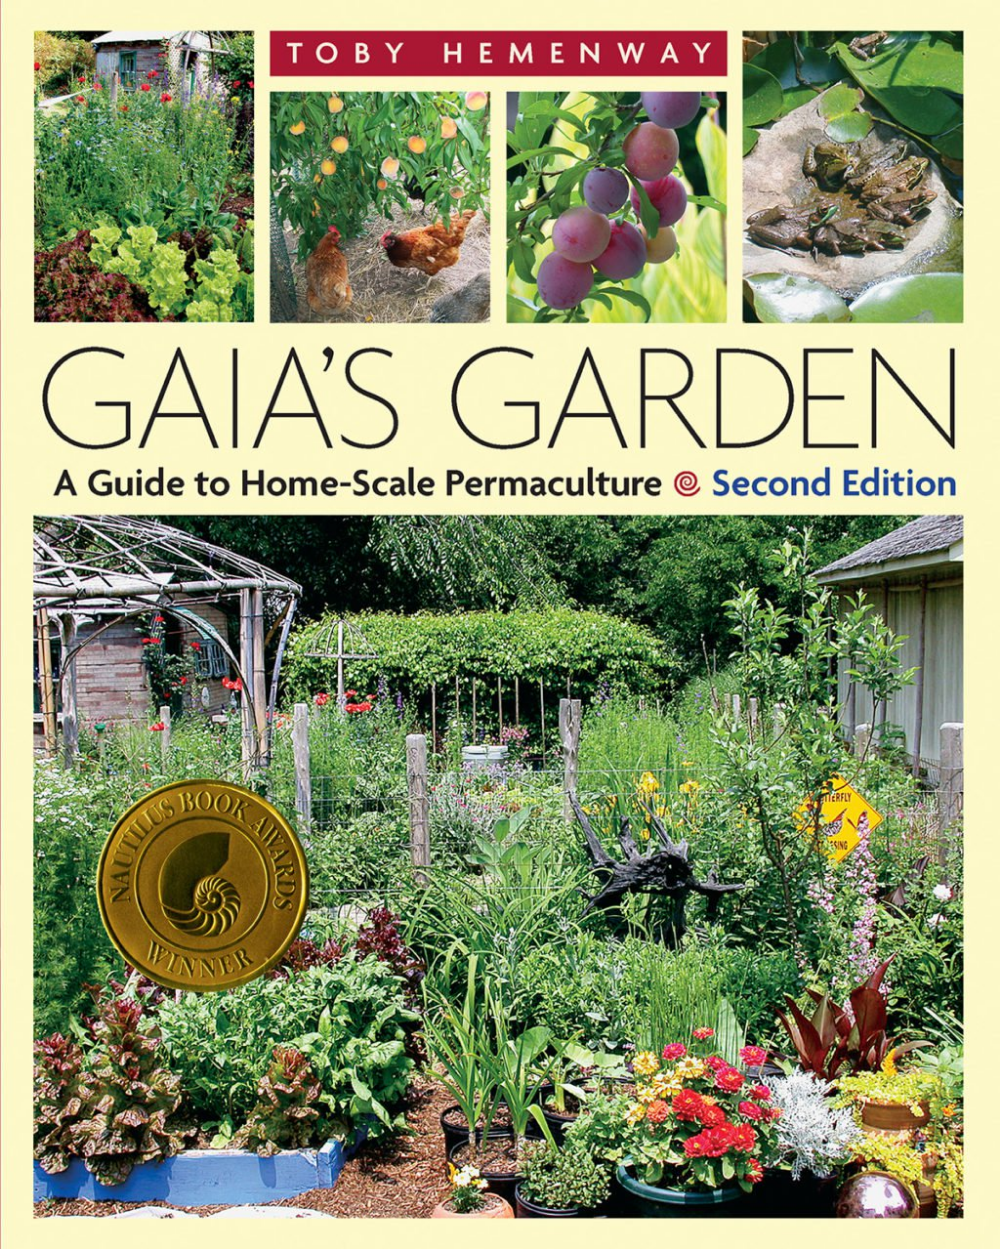 ff00afecbd454366bde07d7cd3aa19b7 - The Vegetable Gardener's Guide To Permaculture